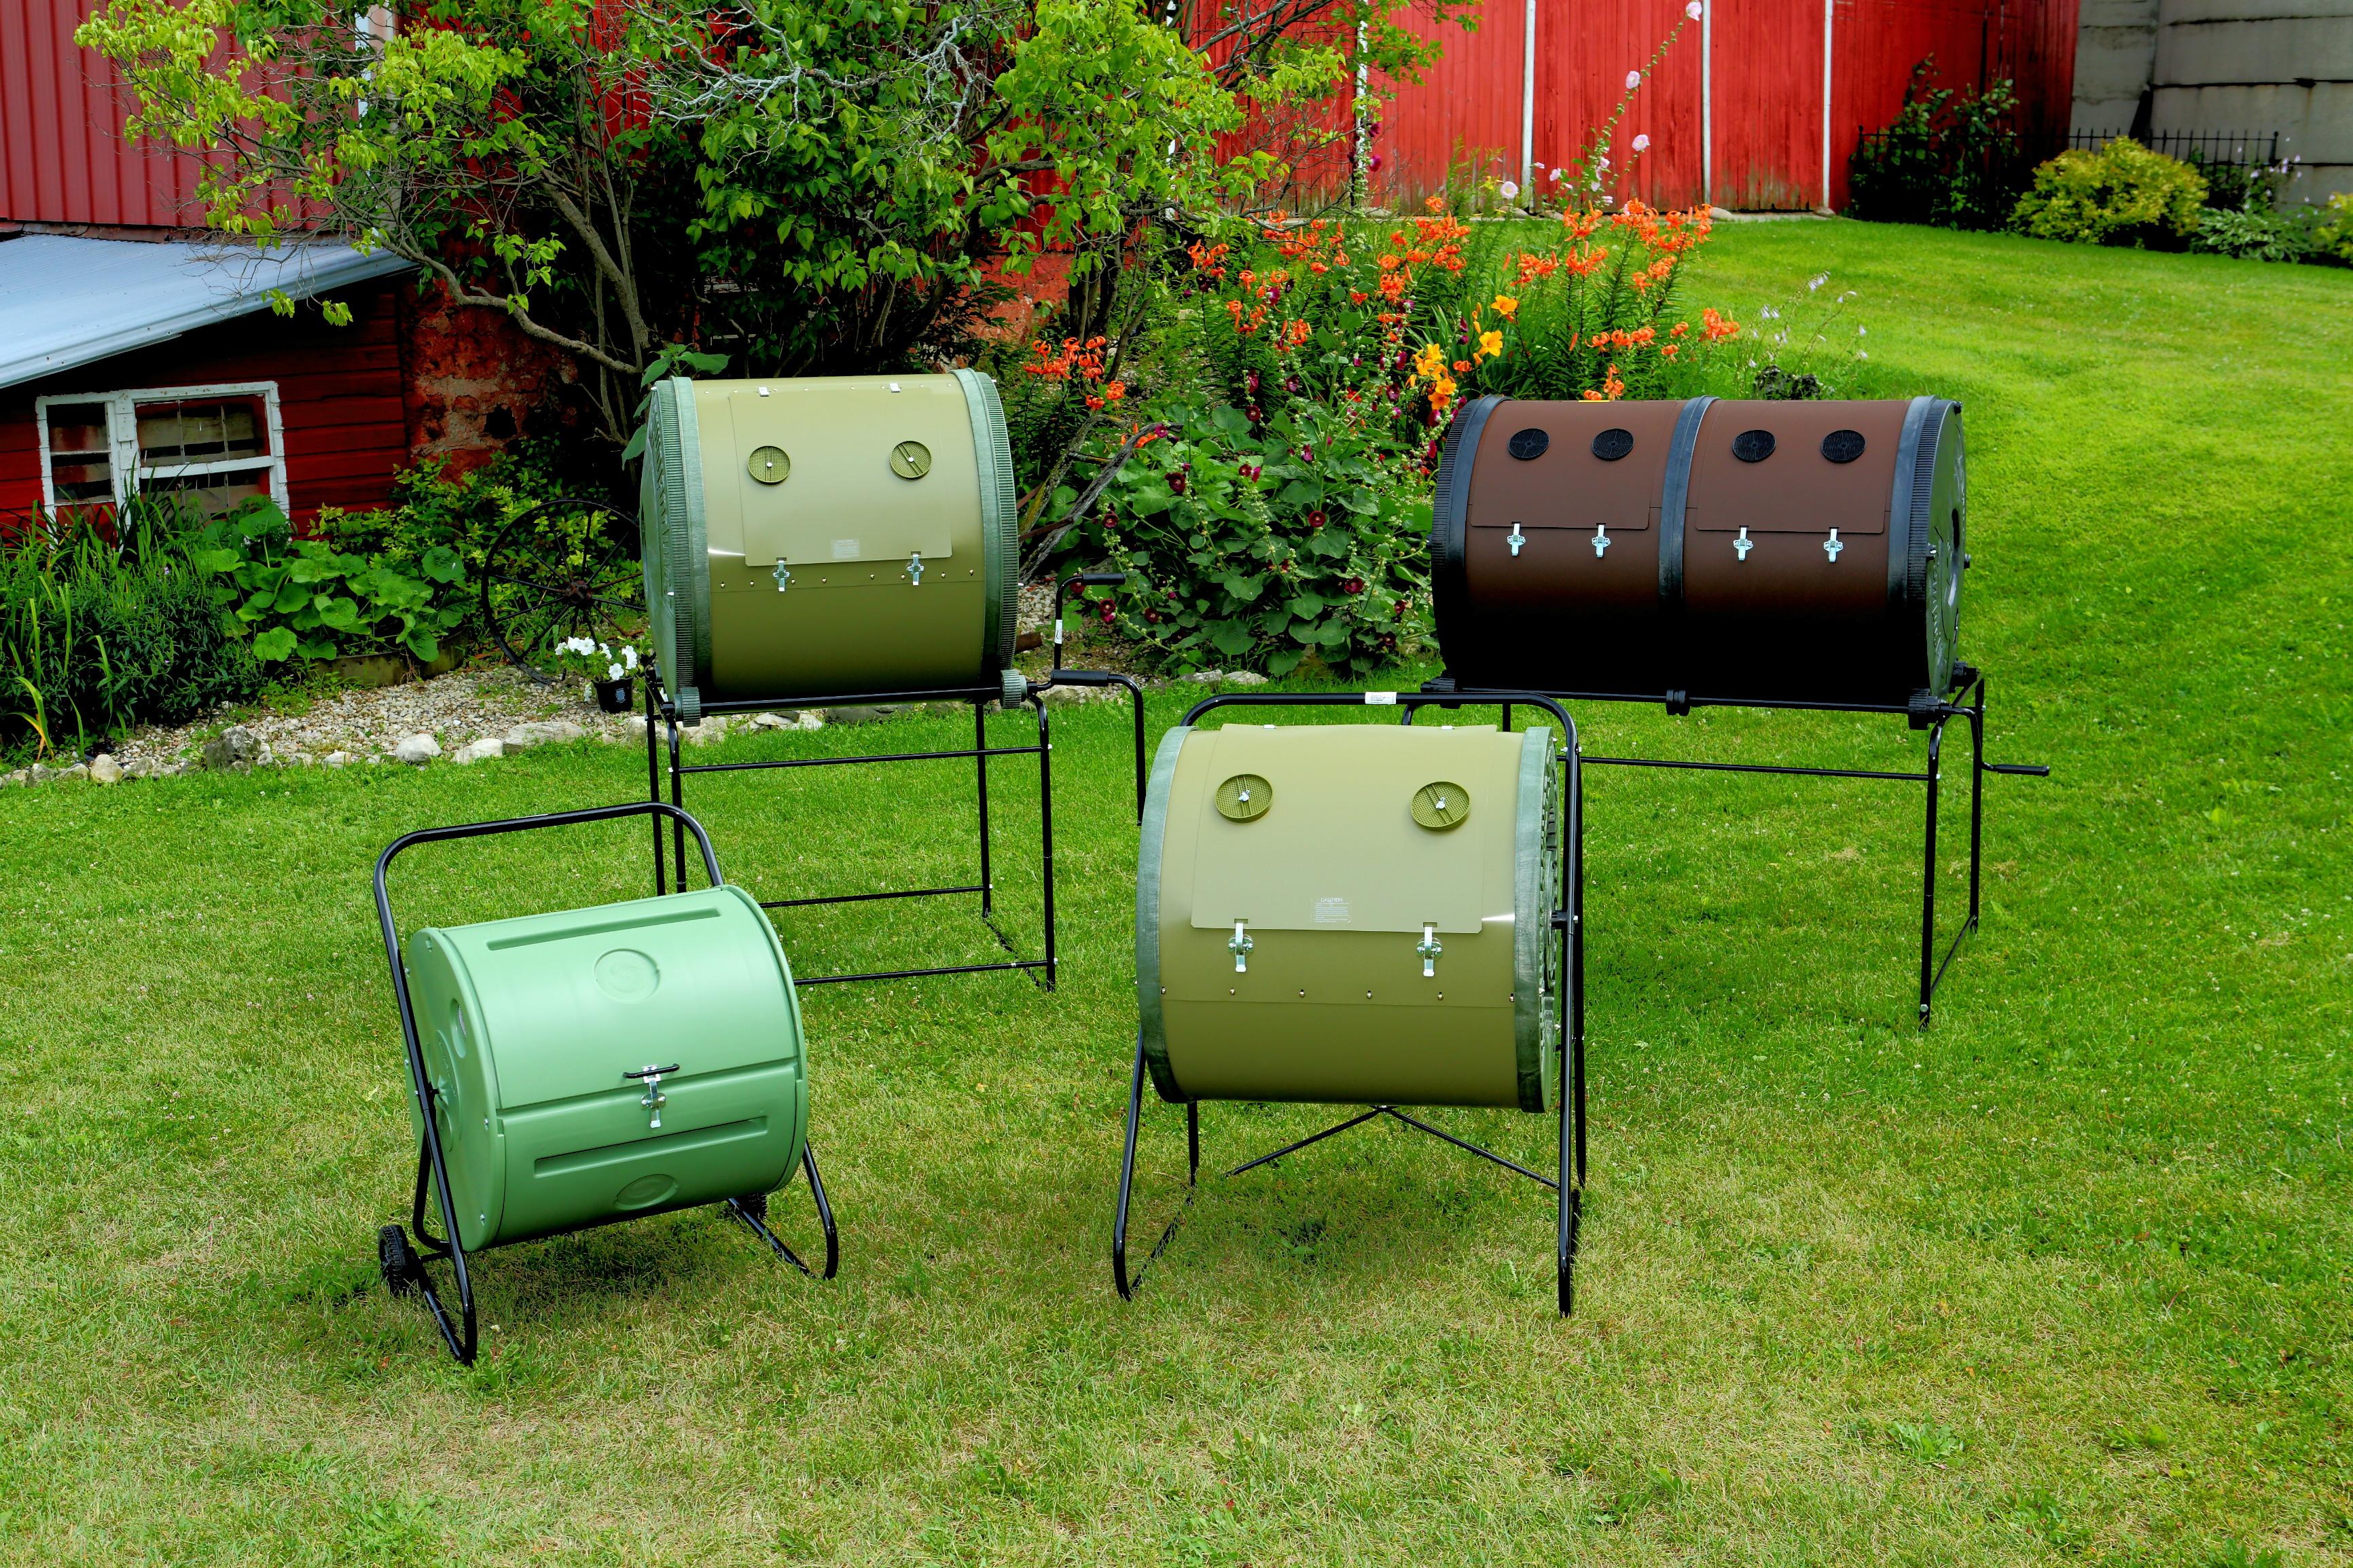 Group composters